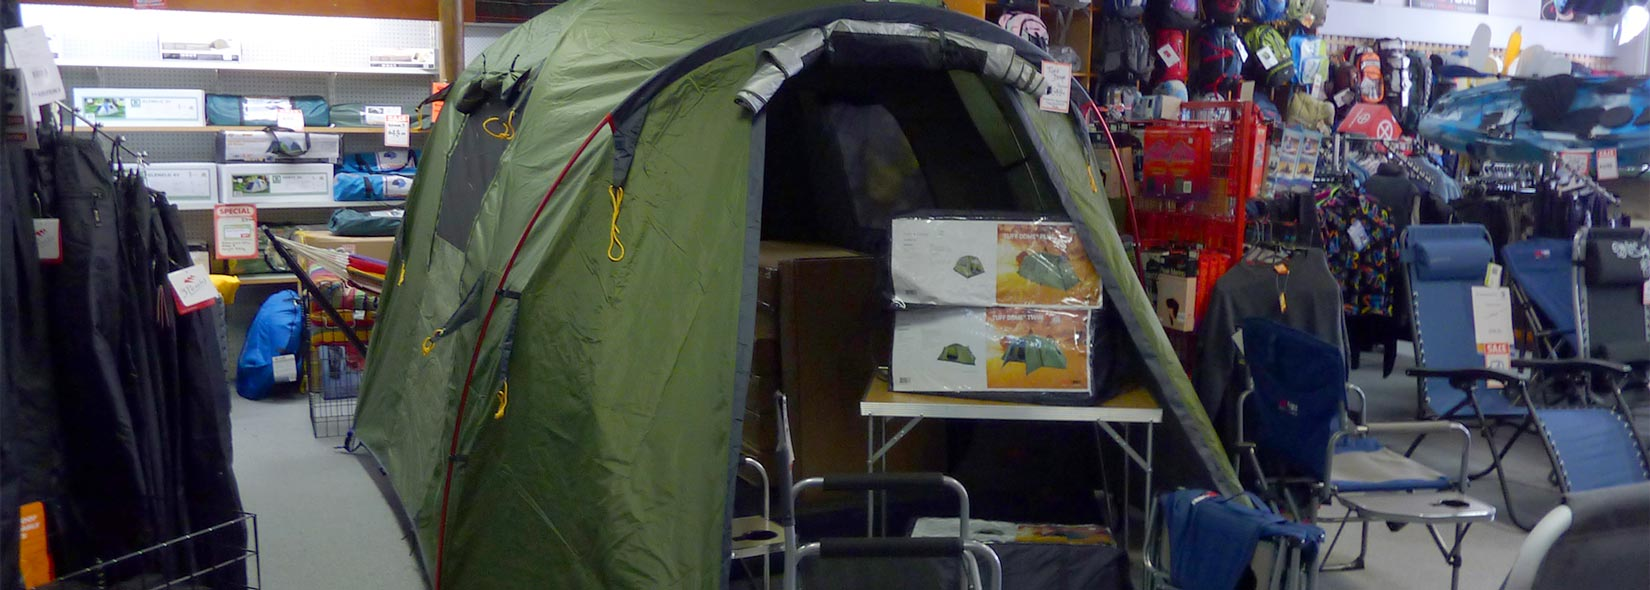 Canvas, Dome, Hiking and Beach Tents